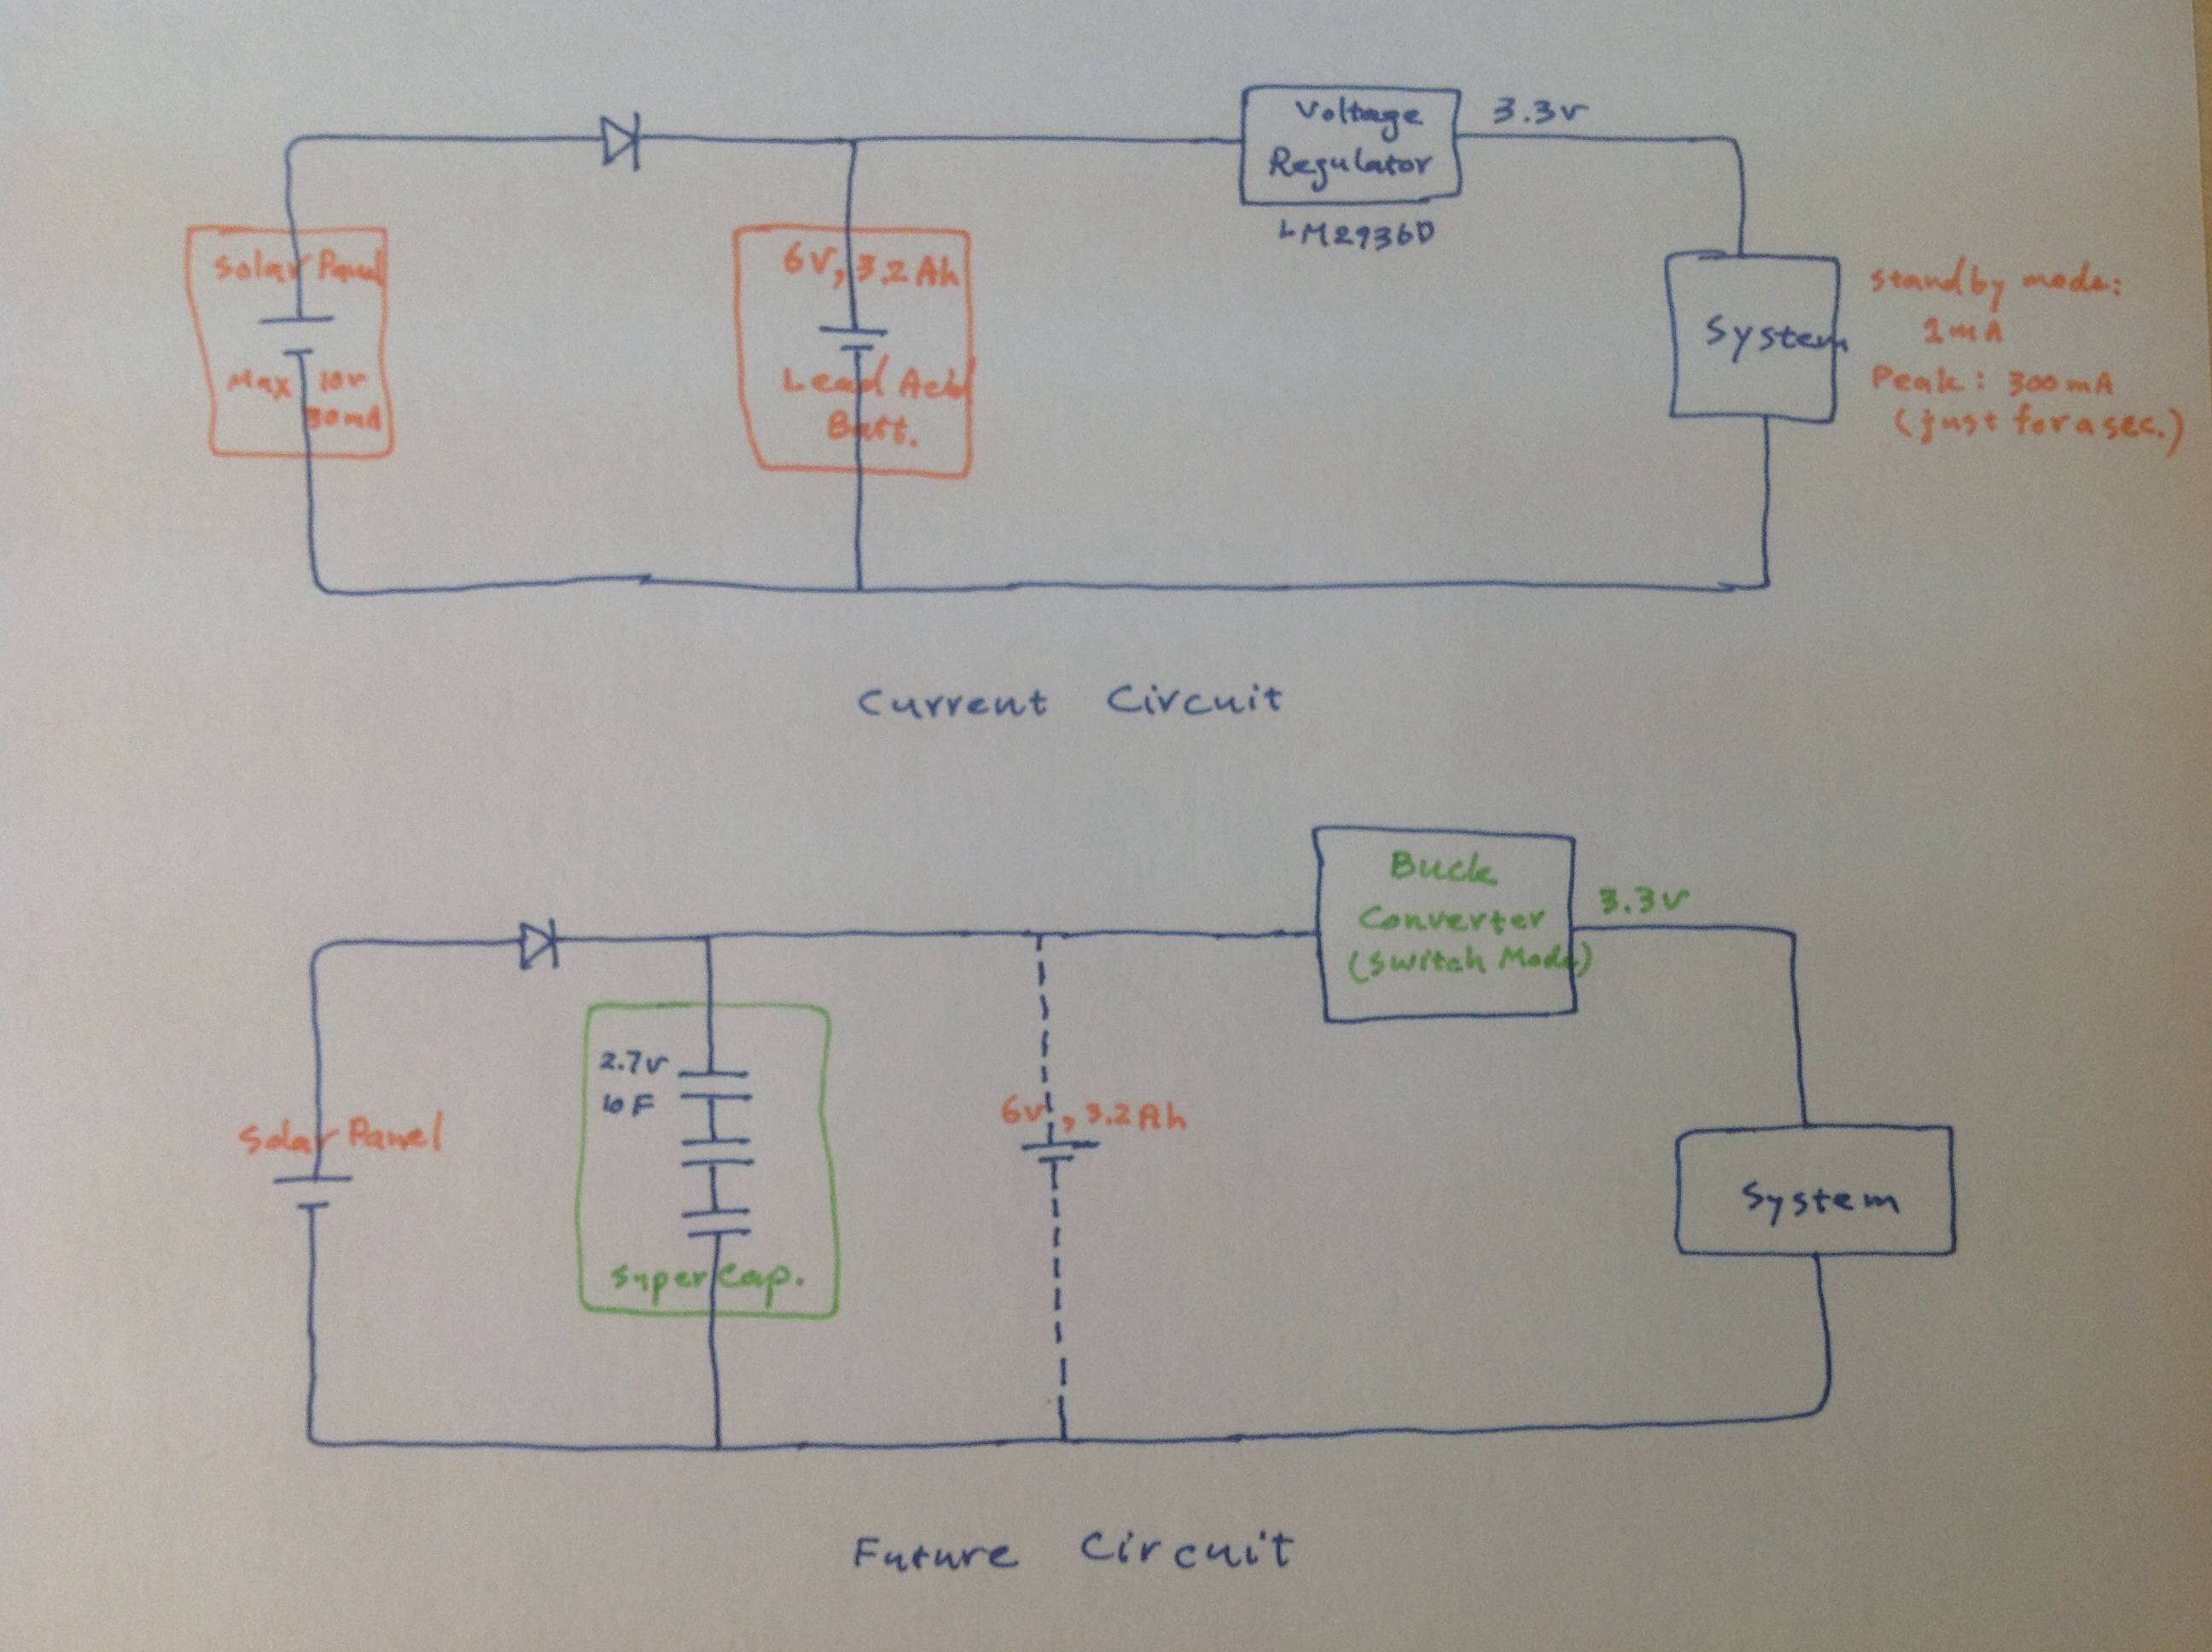 Panelwiringdiagram Electrical Panel Wiring Diagram In Addition Solar